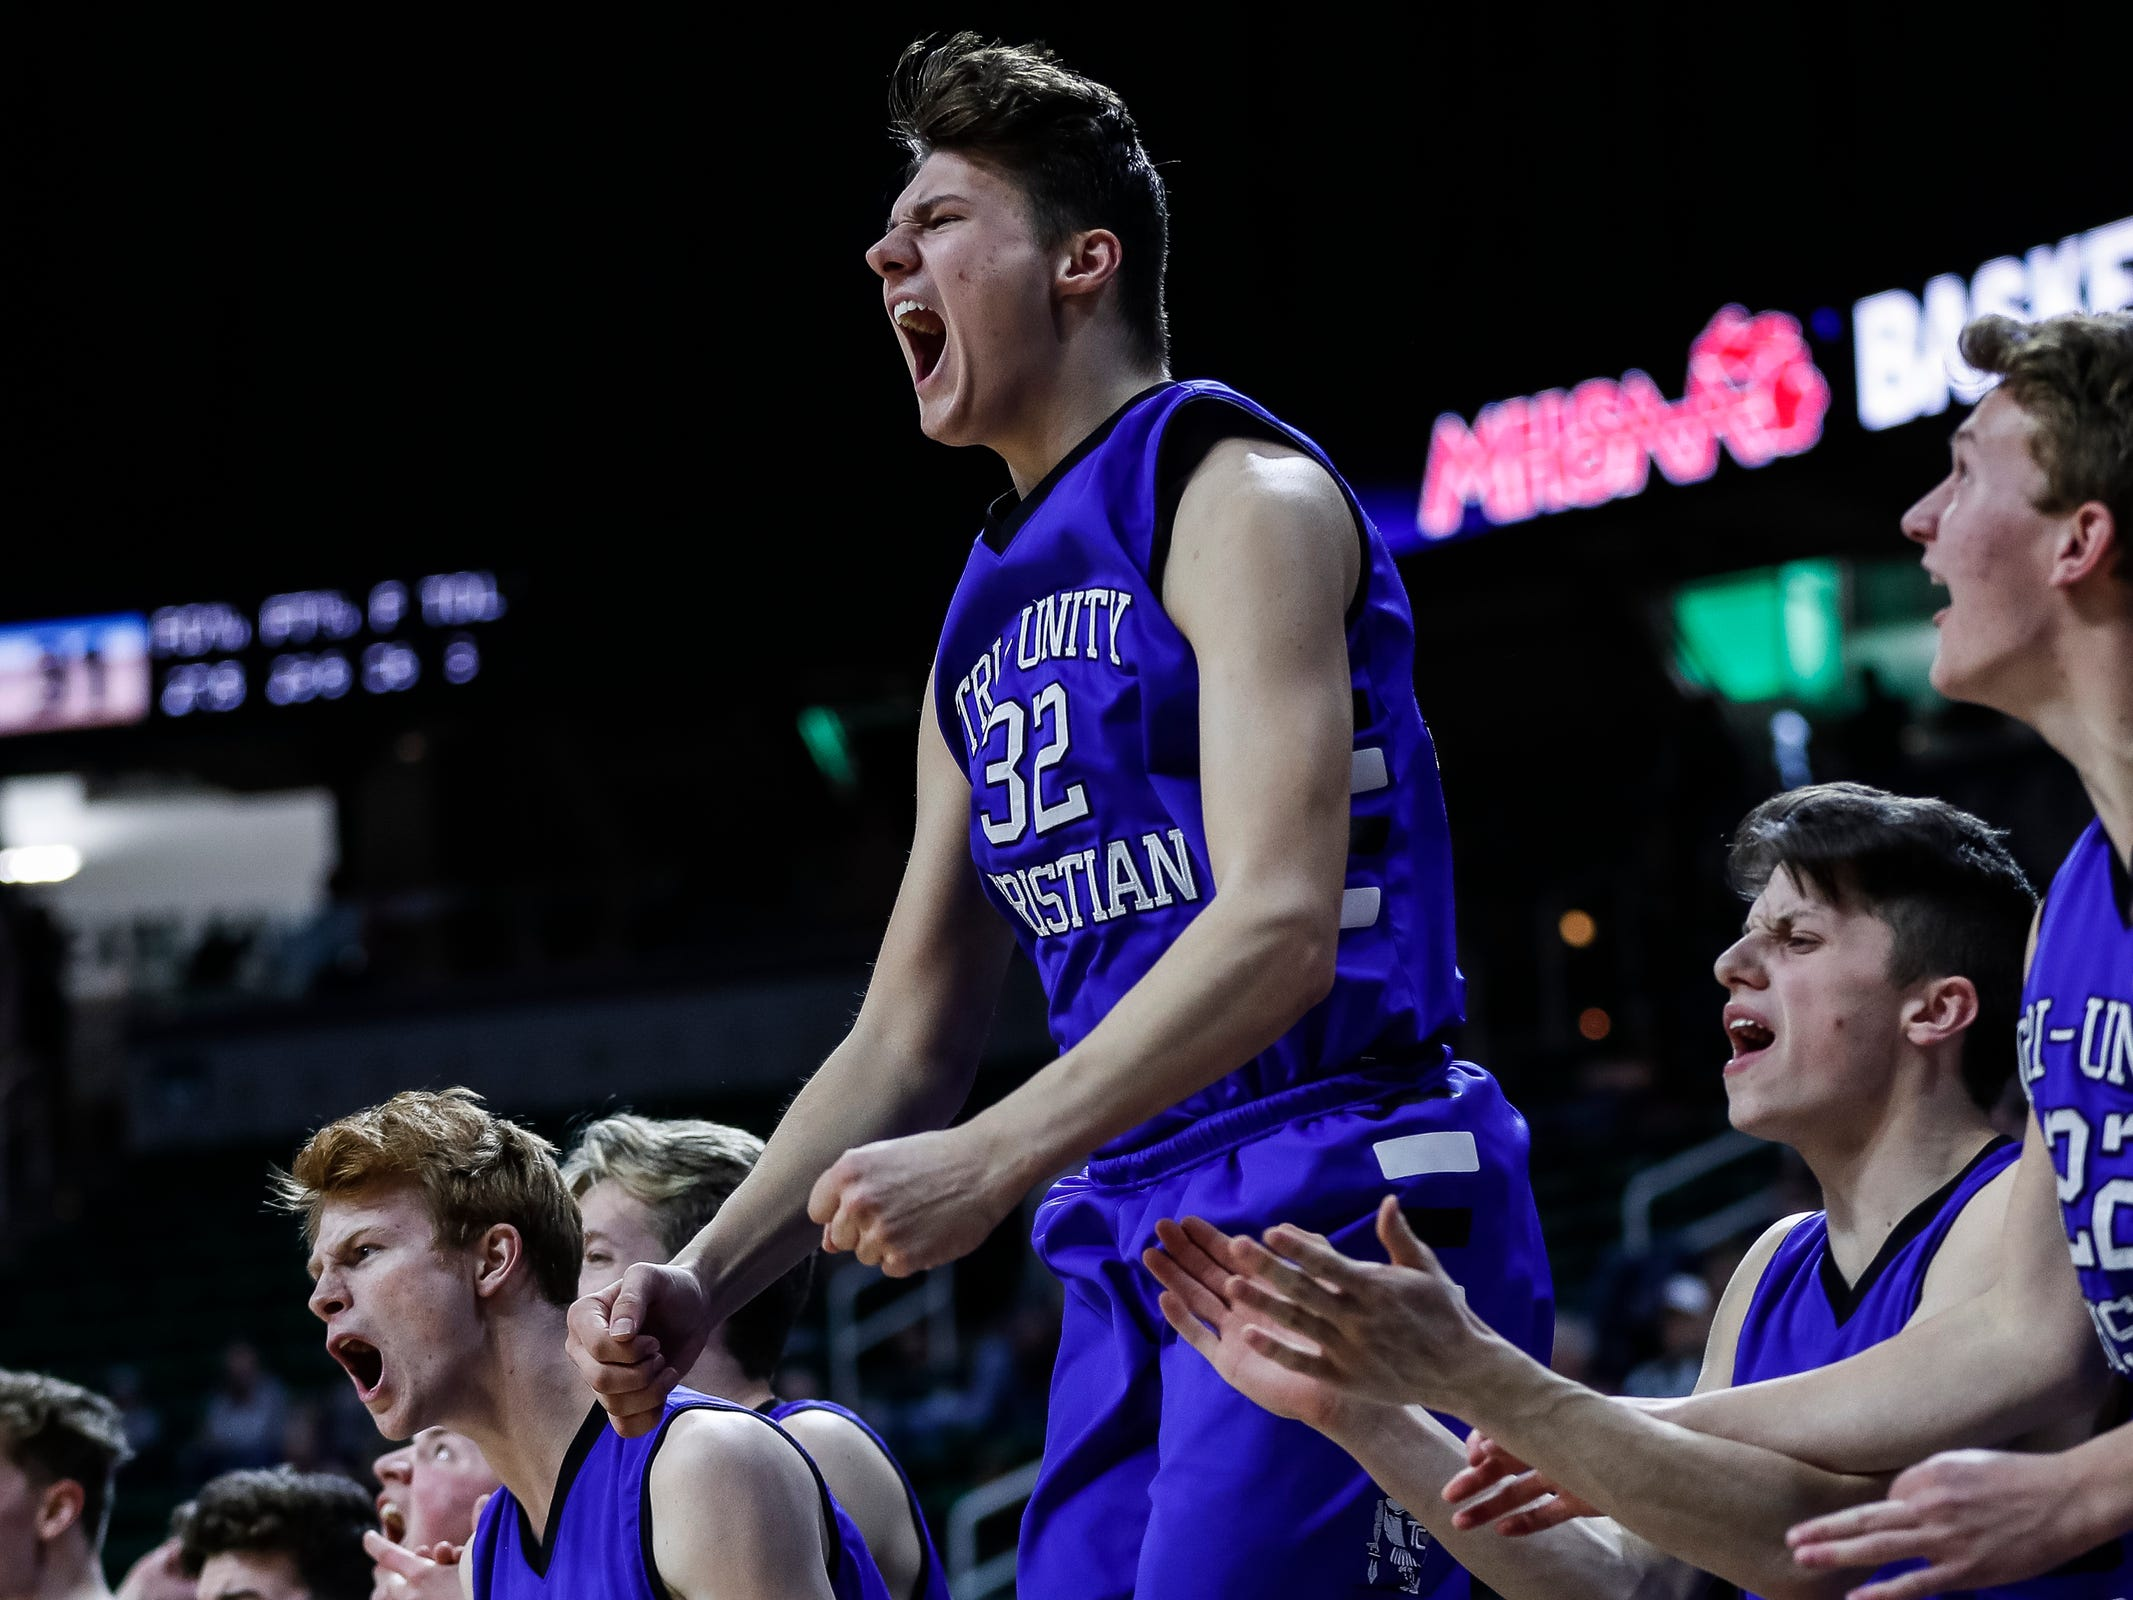 Wyoming Tri-unity Christian's Austin Treece (32) jumps up as he cheers for his teammates against Frankfort during the second half of MHSAA Division 4 semifinal at the Breslin Center in East Lansing, Thursday, March 14, 2019.